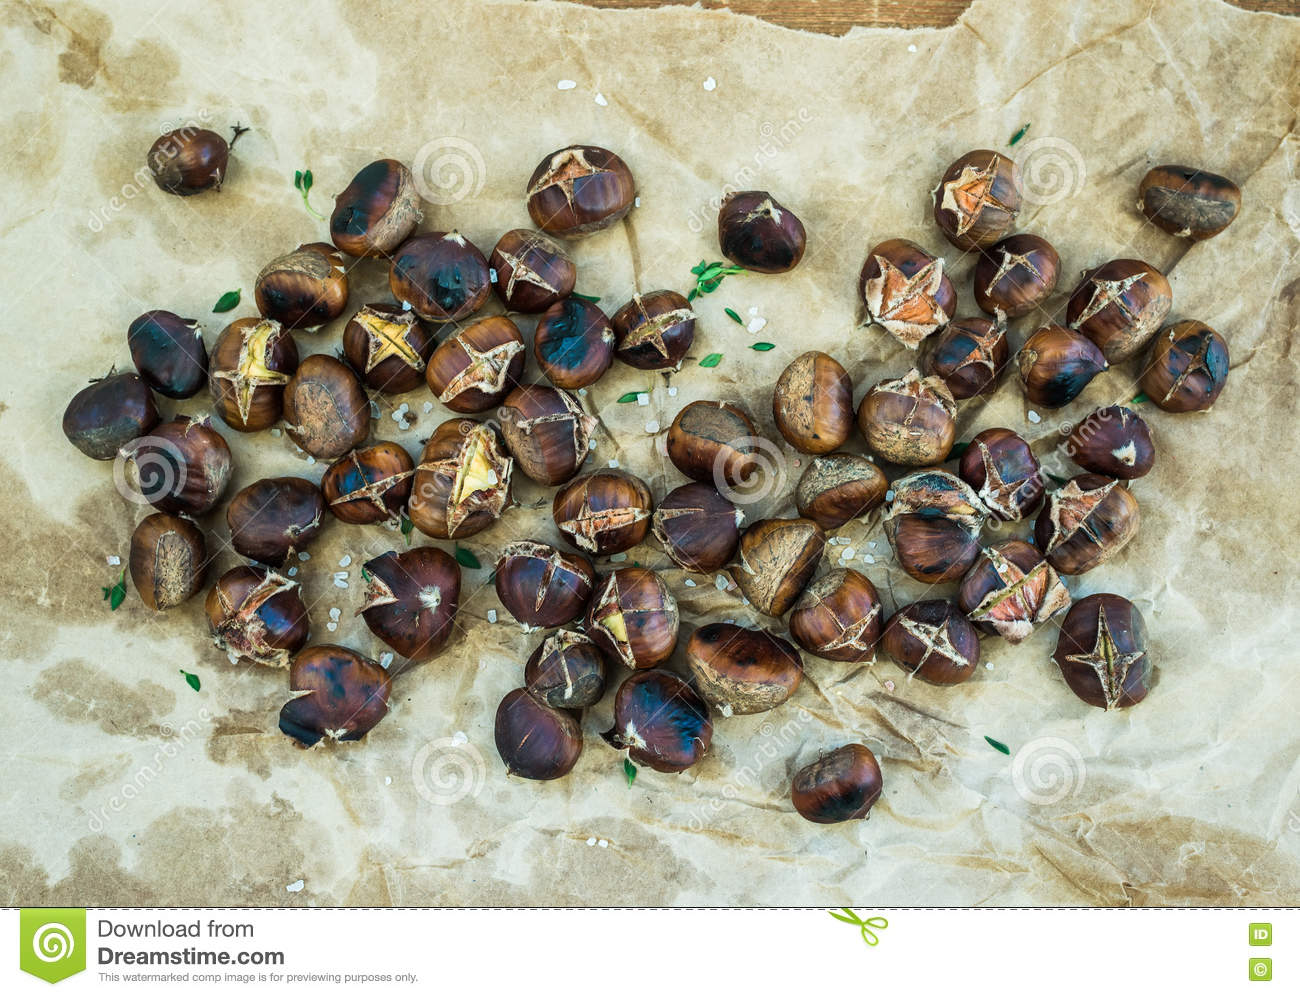 Roasted chestnuts on oily worn craft paper over rustic wooden background, top view.